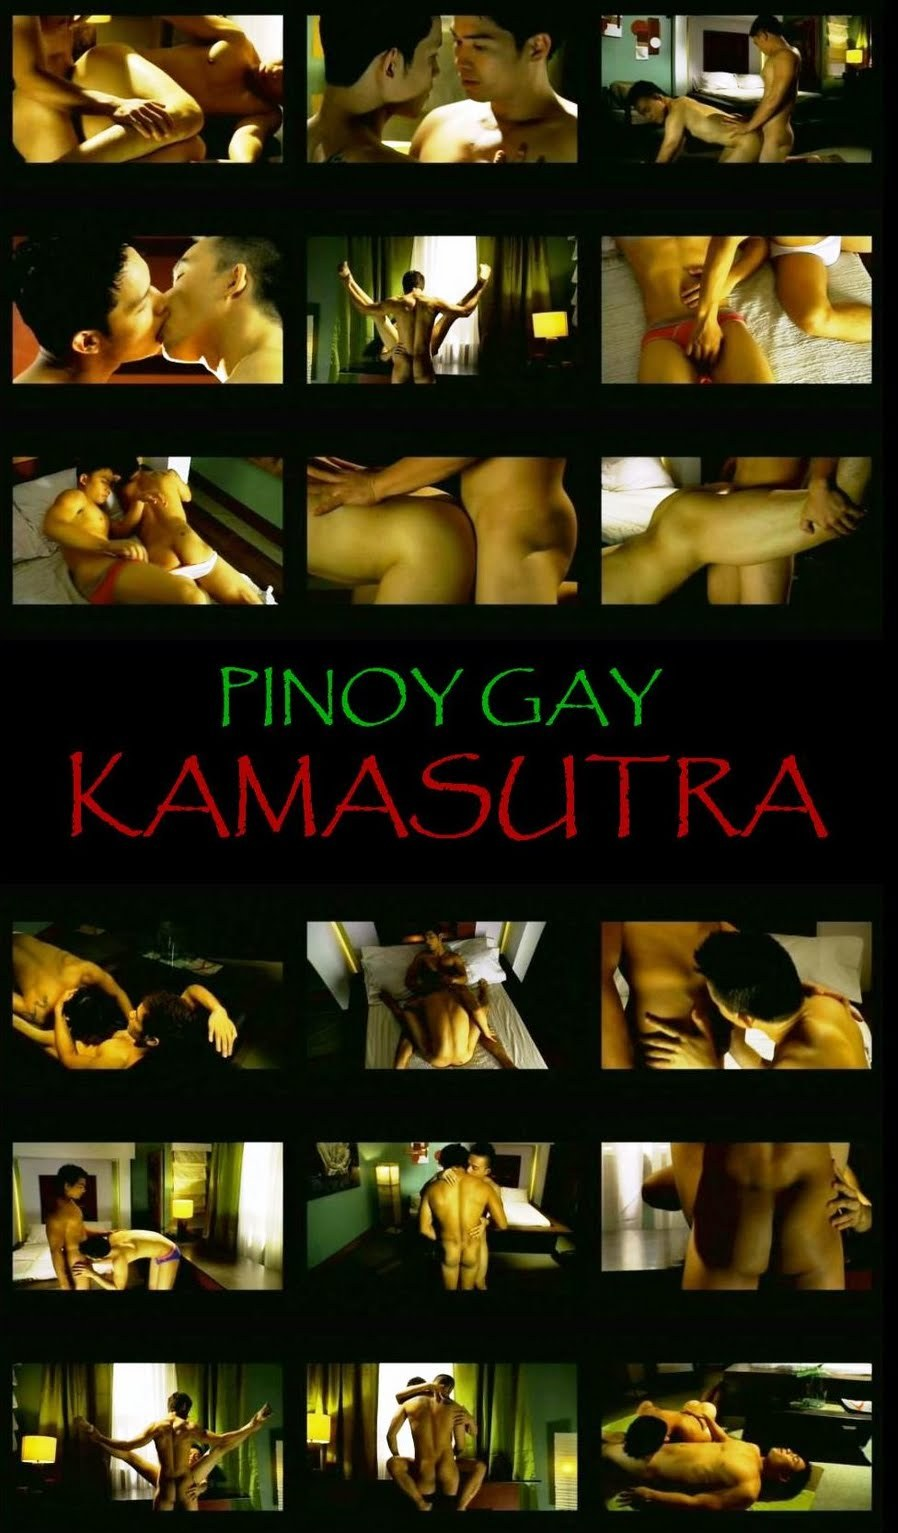 gey-kamasutra-video